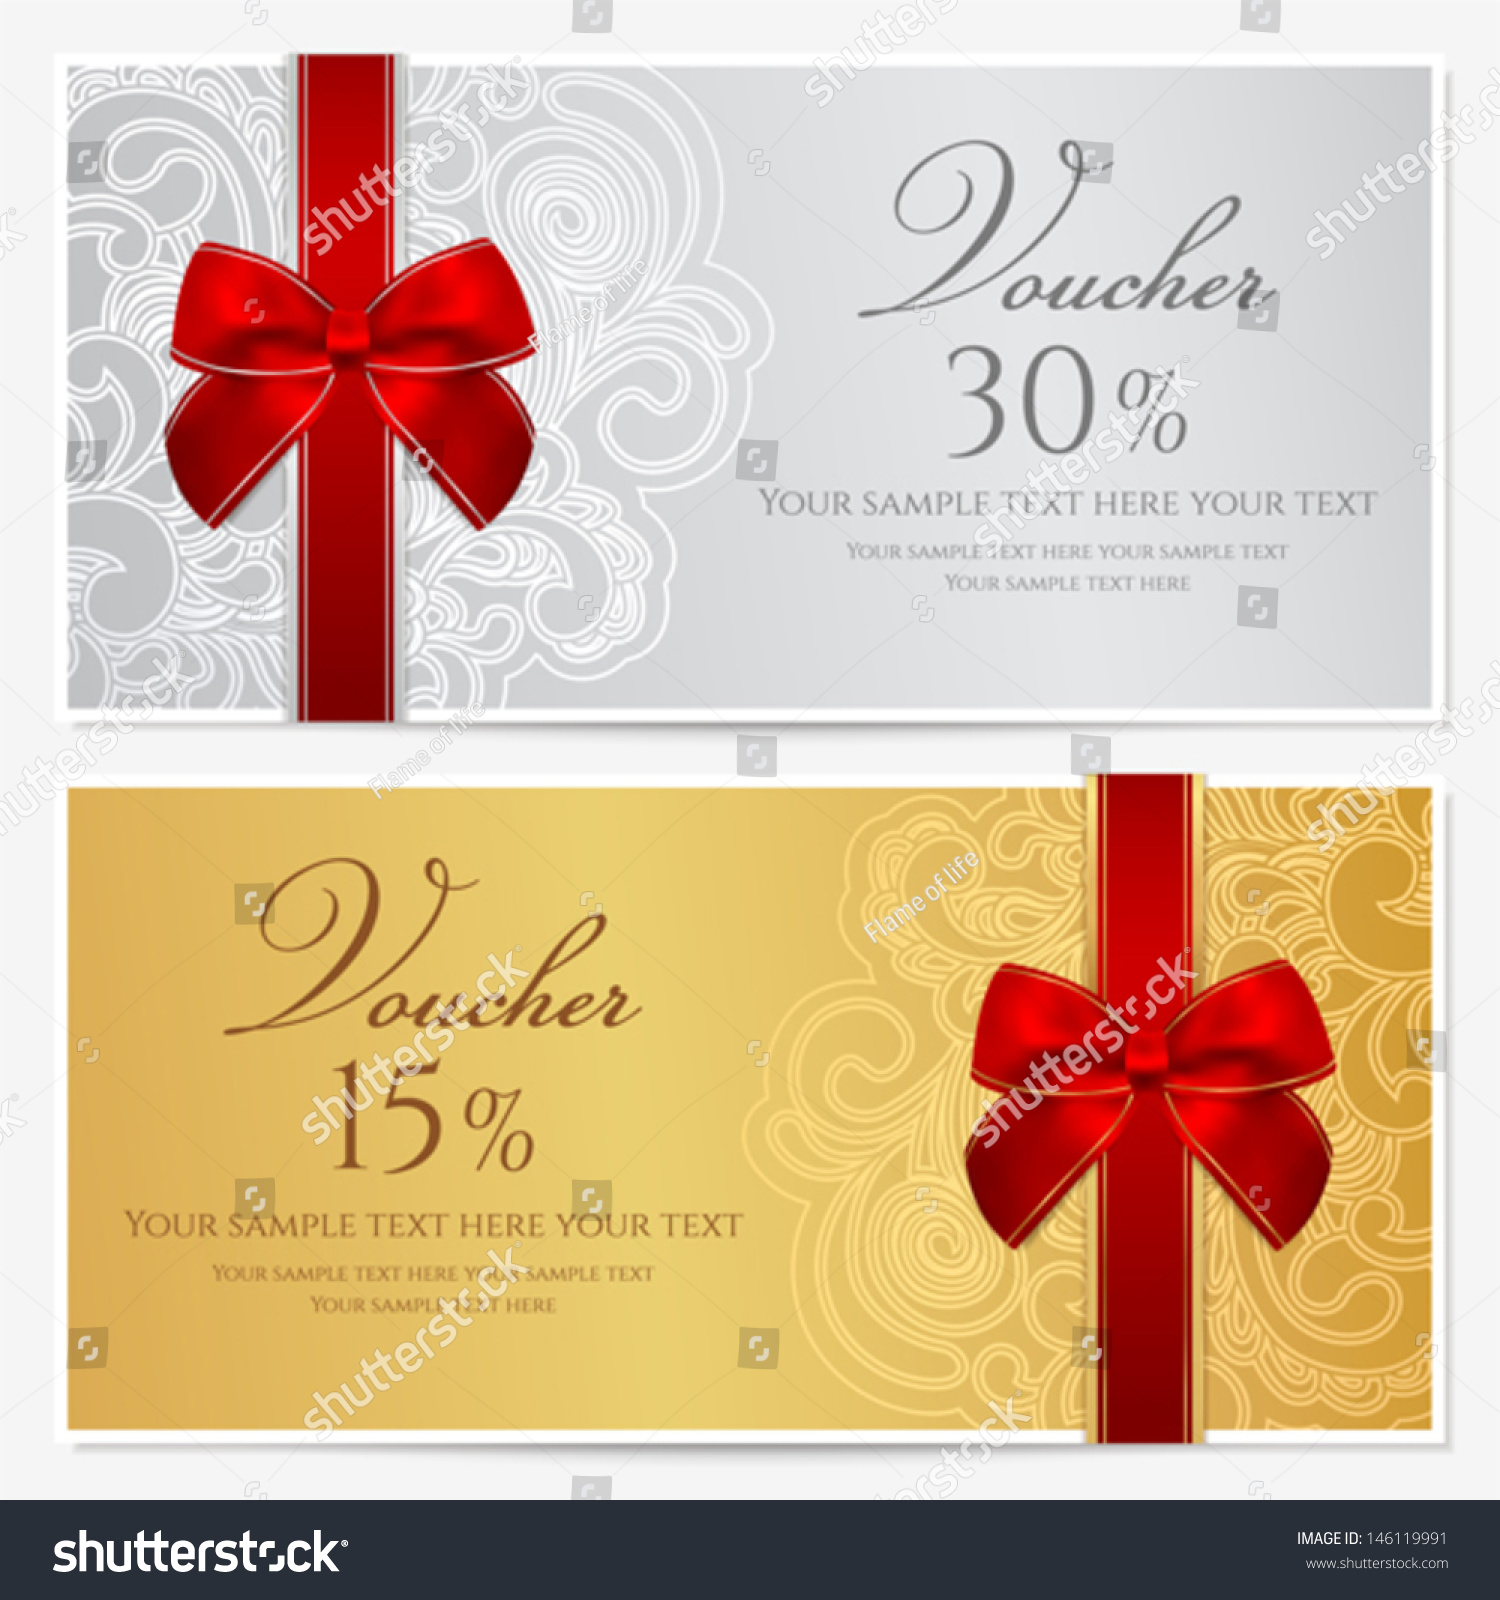 Voucher Gift Certificate Coupon Template Border Stock